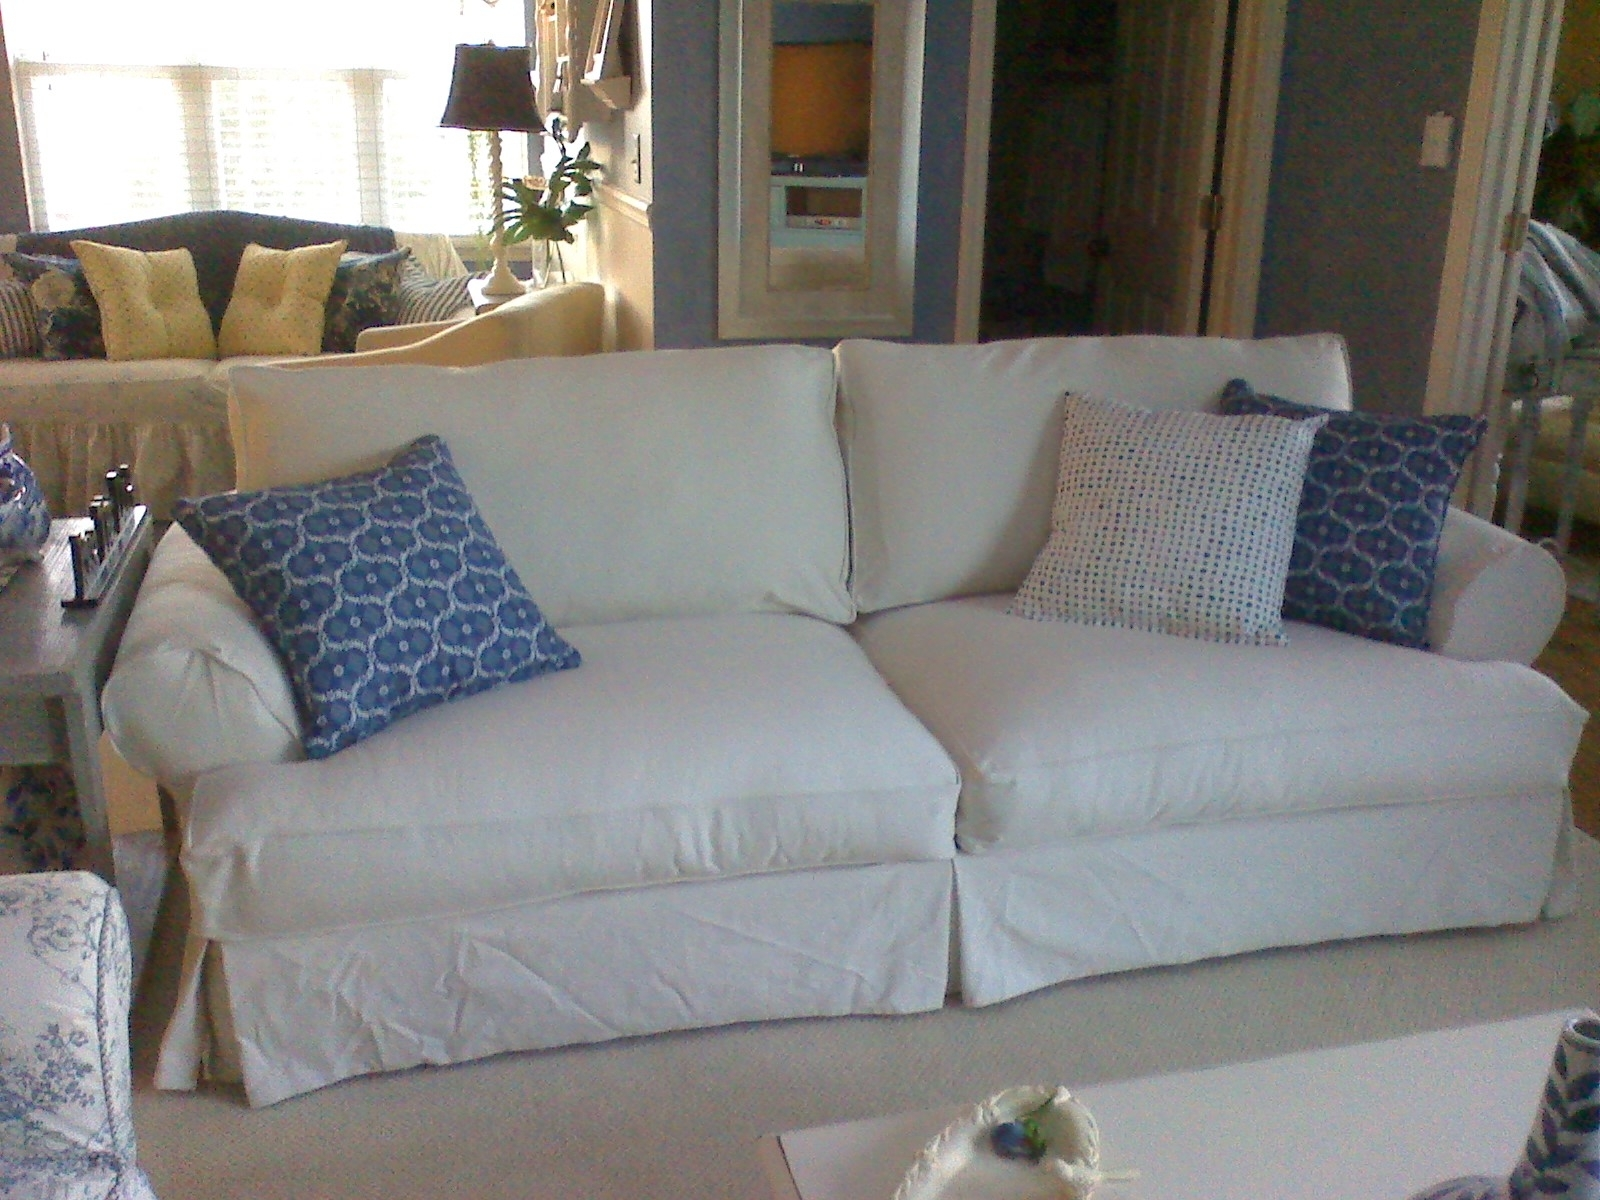 Replacement Slipcover Outlet  Replacement Slipcovers For Famous Inside Widely Used Slipcovers Sofas (View 13 of 20)